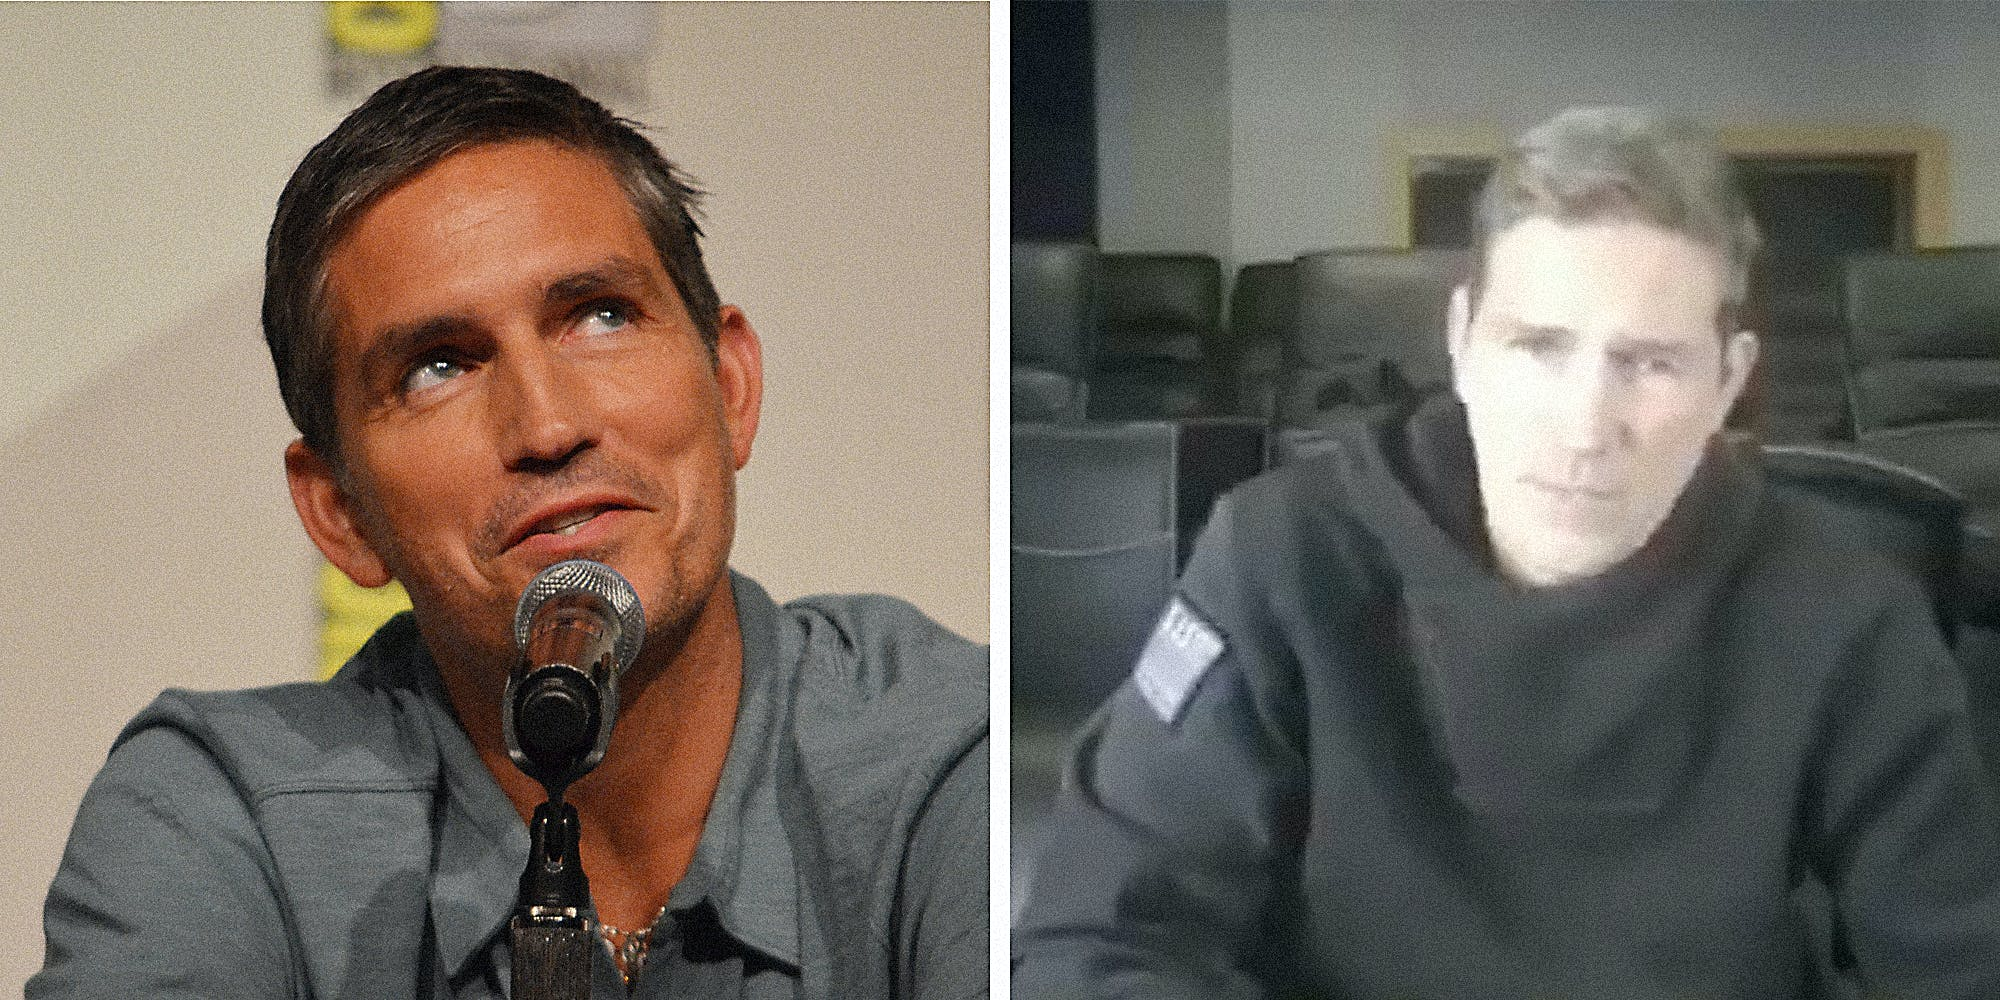 Jim Caviezel at a microphone.